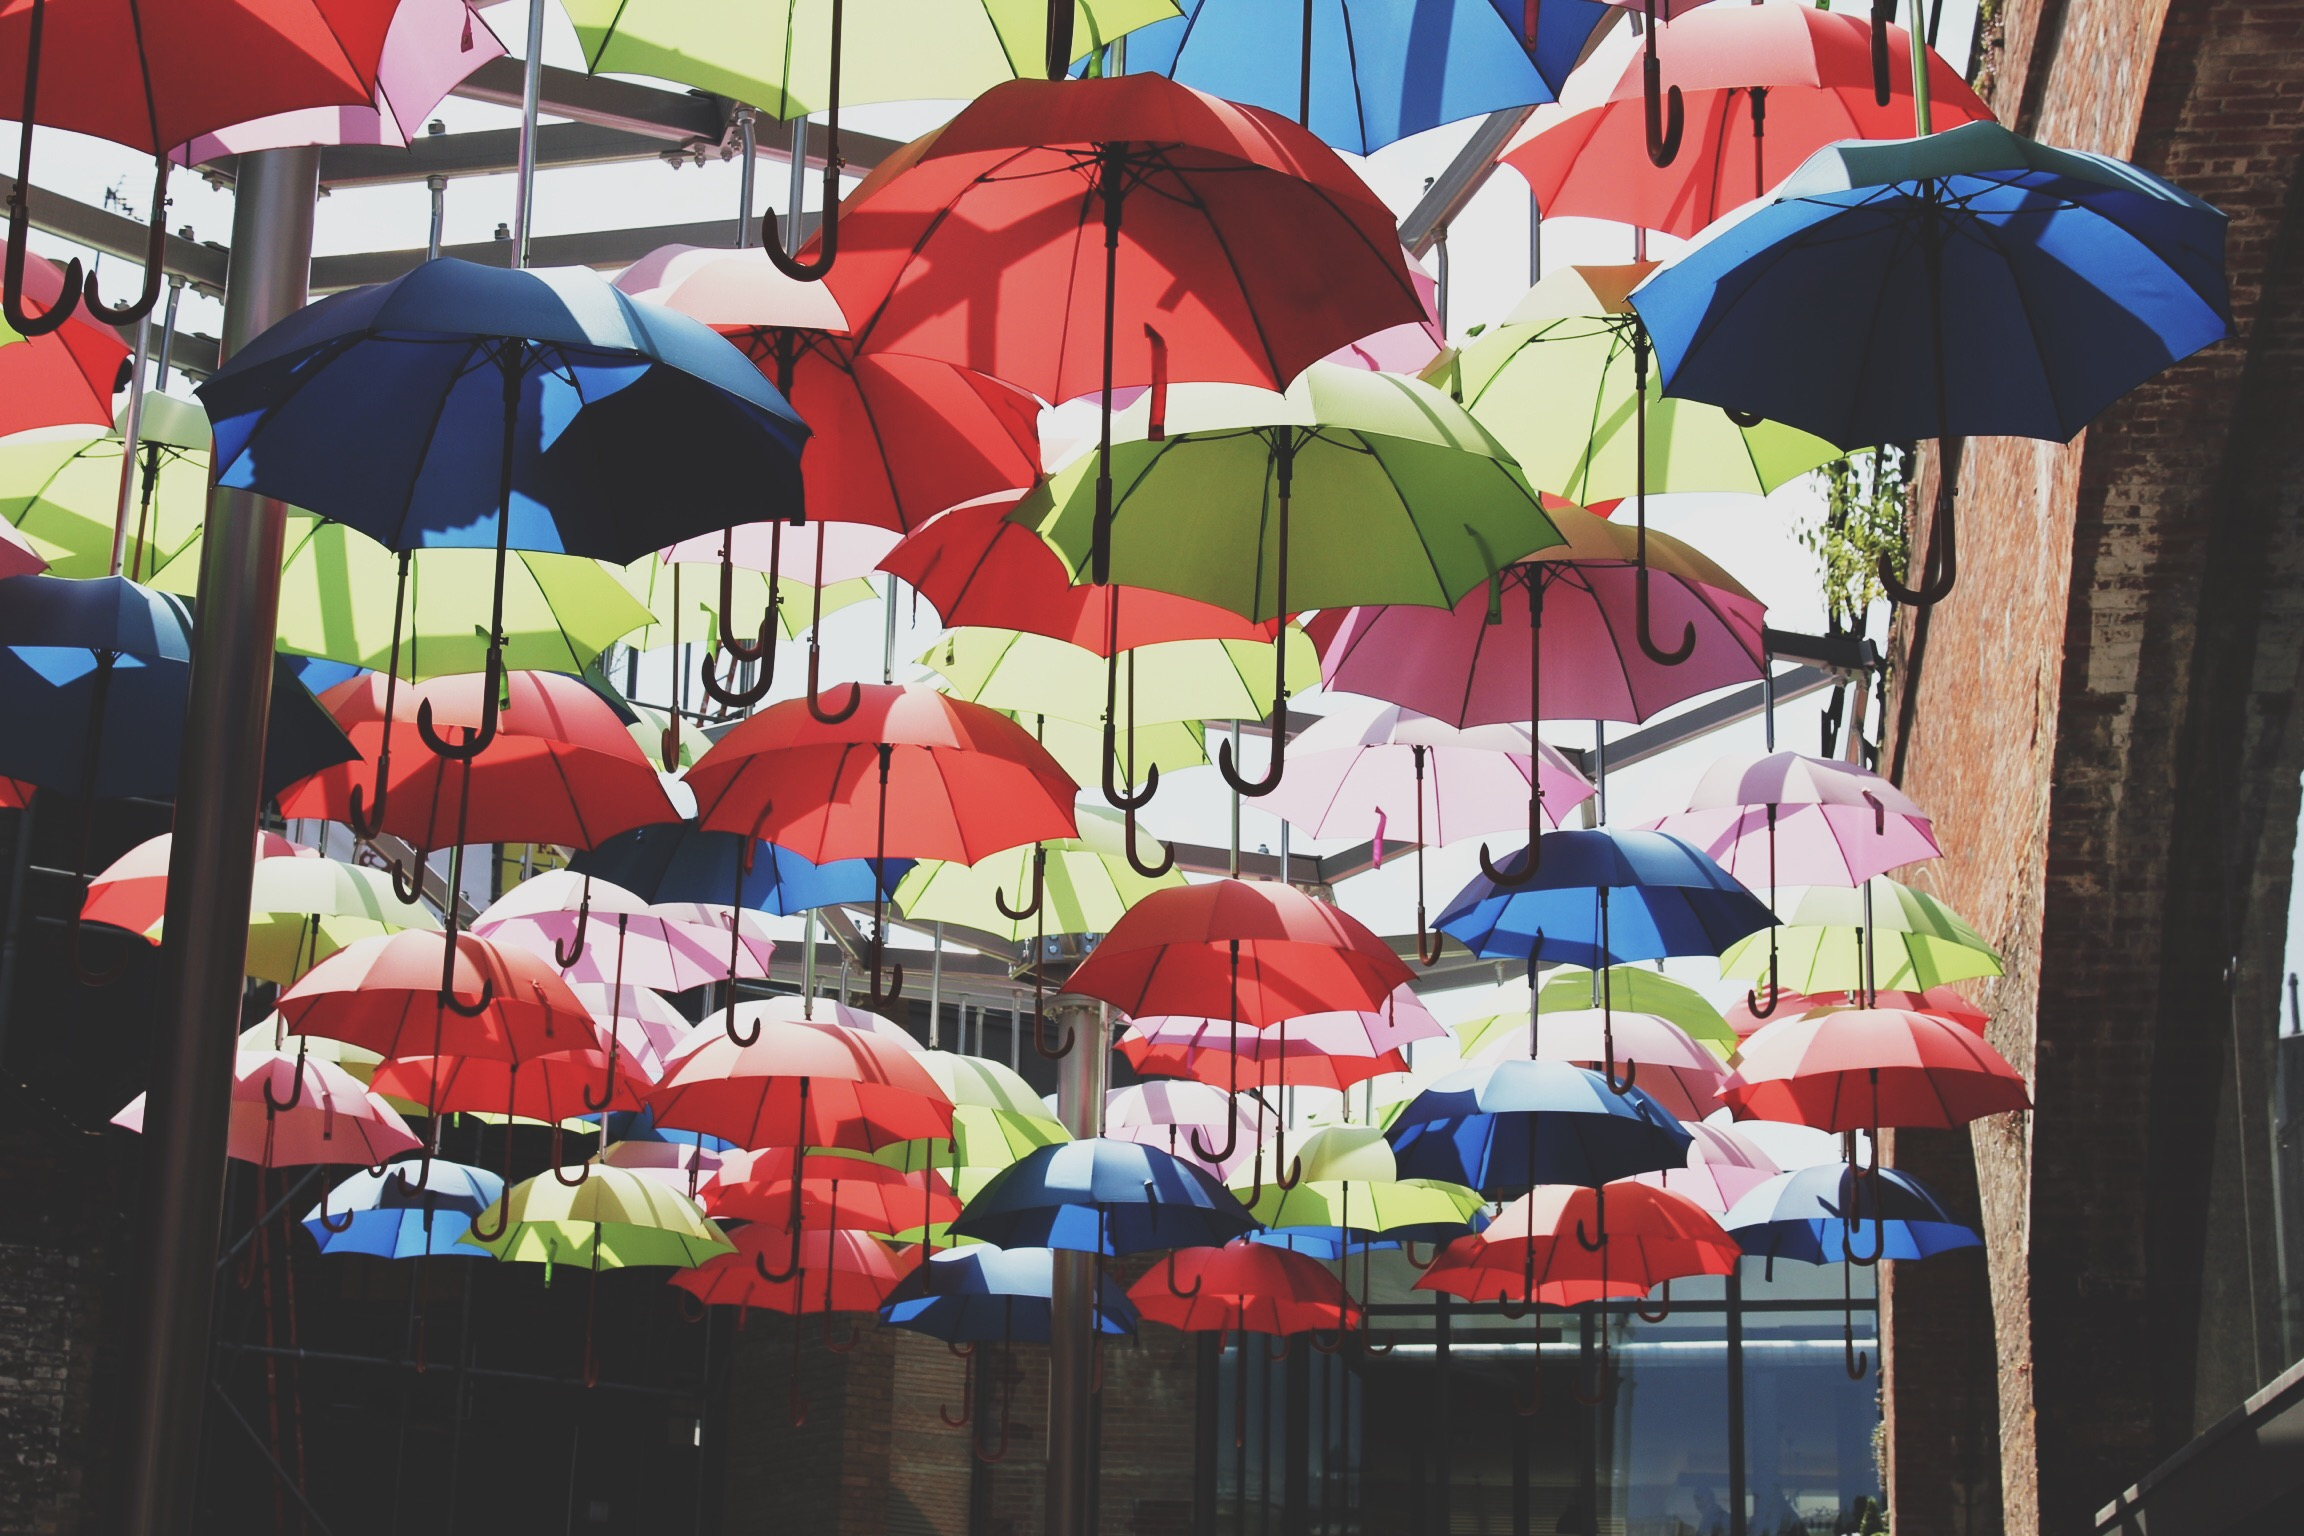 borough-mkt-vinopolis-parapluies-londres.jpg